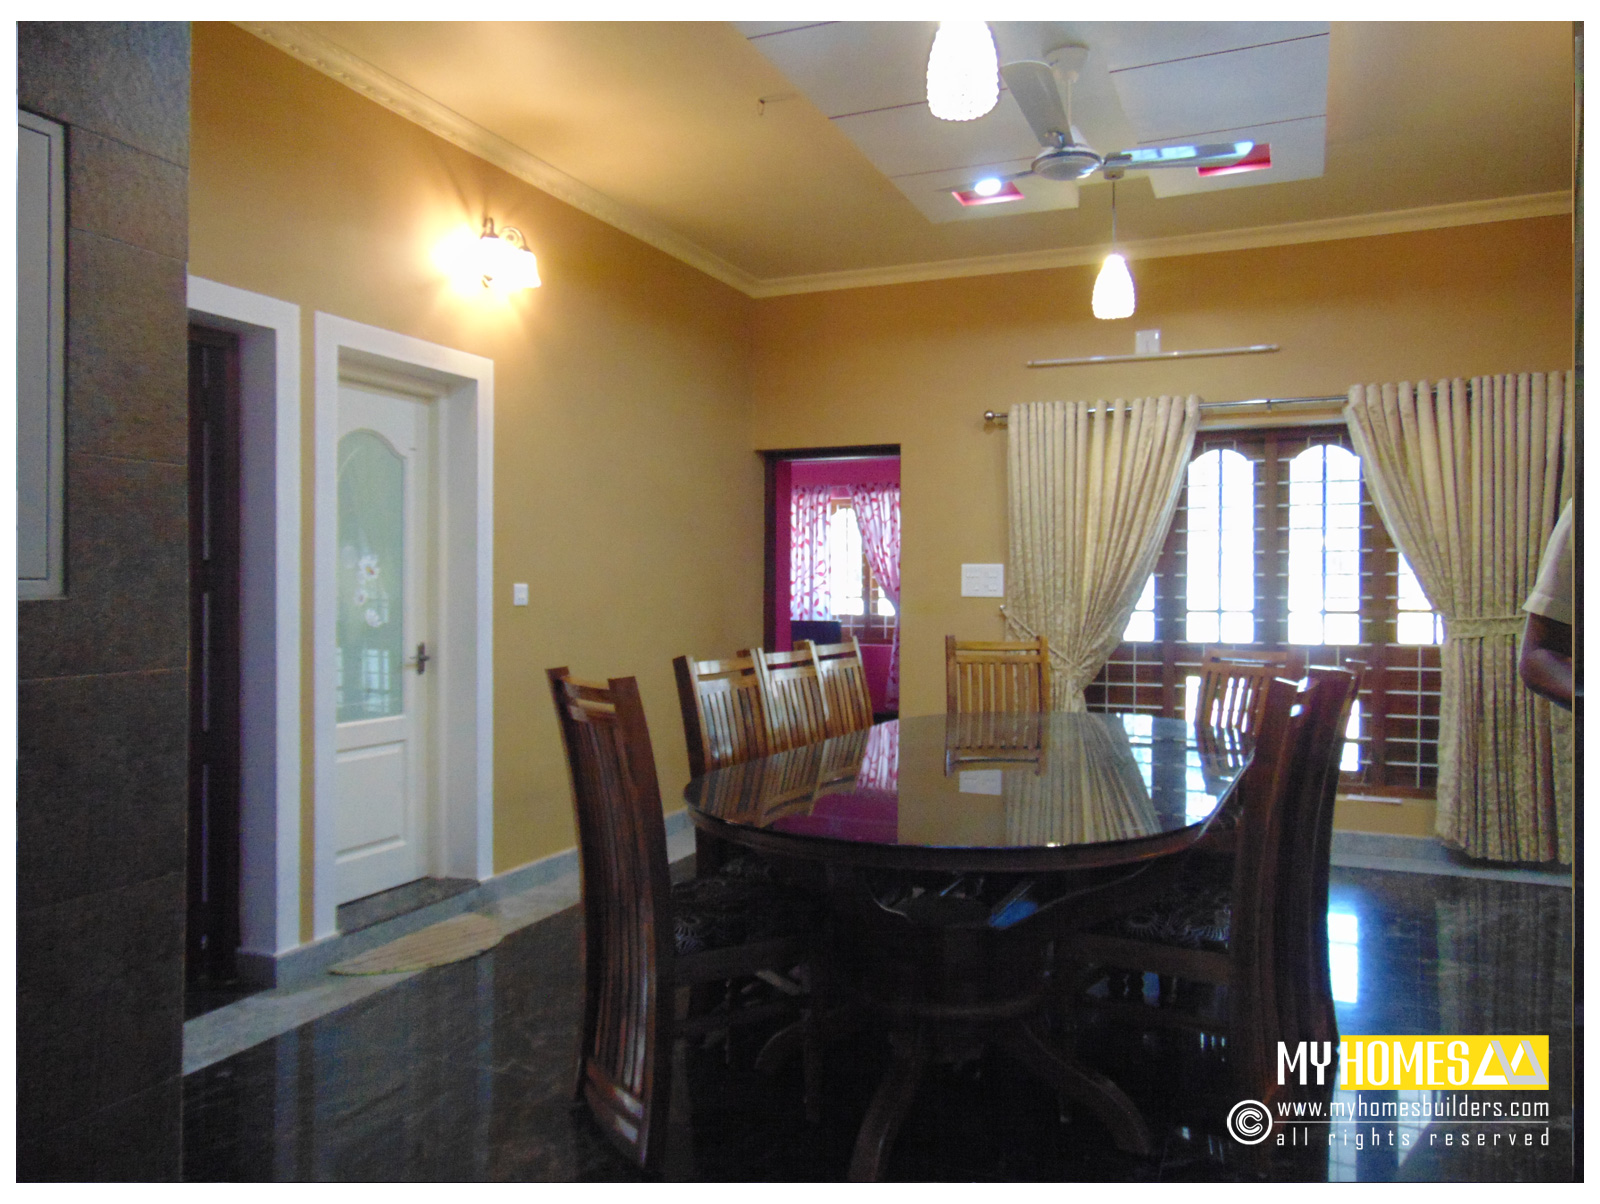 Kerala Dining Room Design